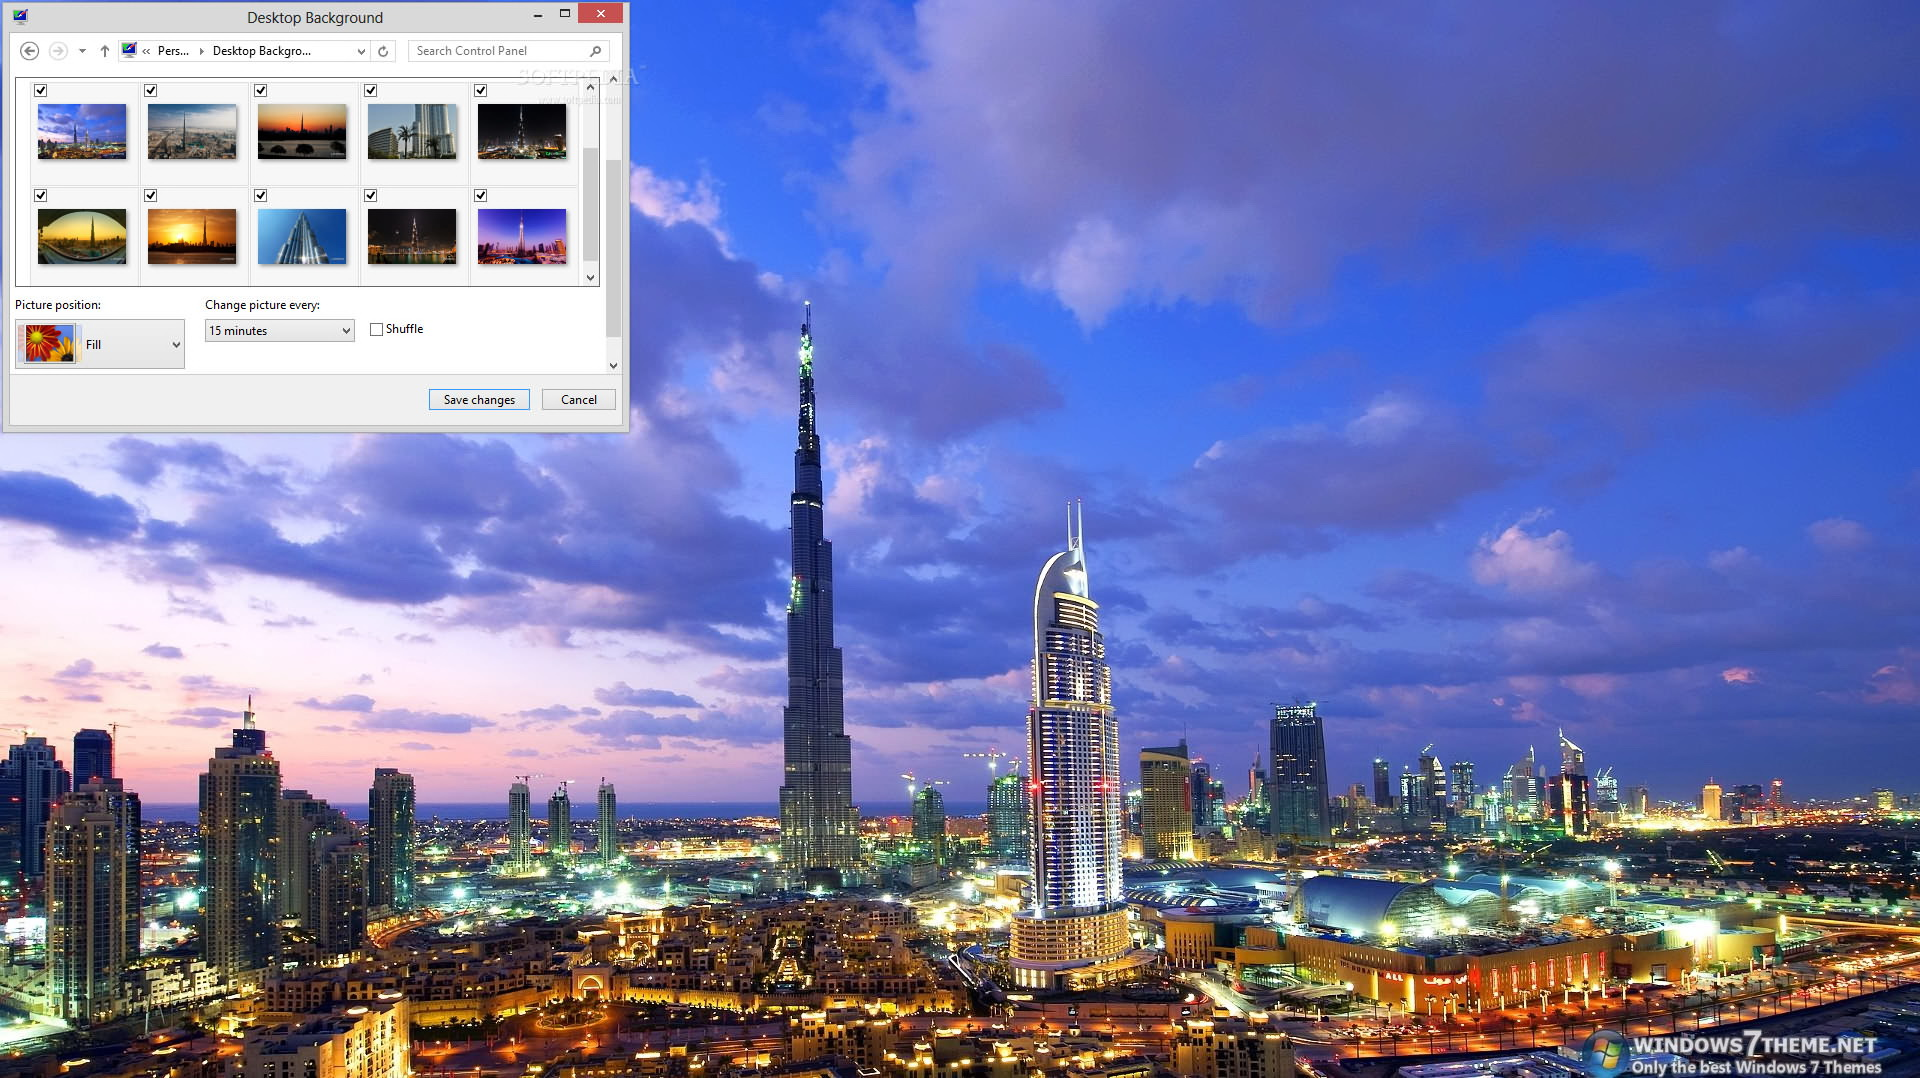 Burj Khalifa Windows 7 Theme